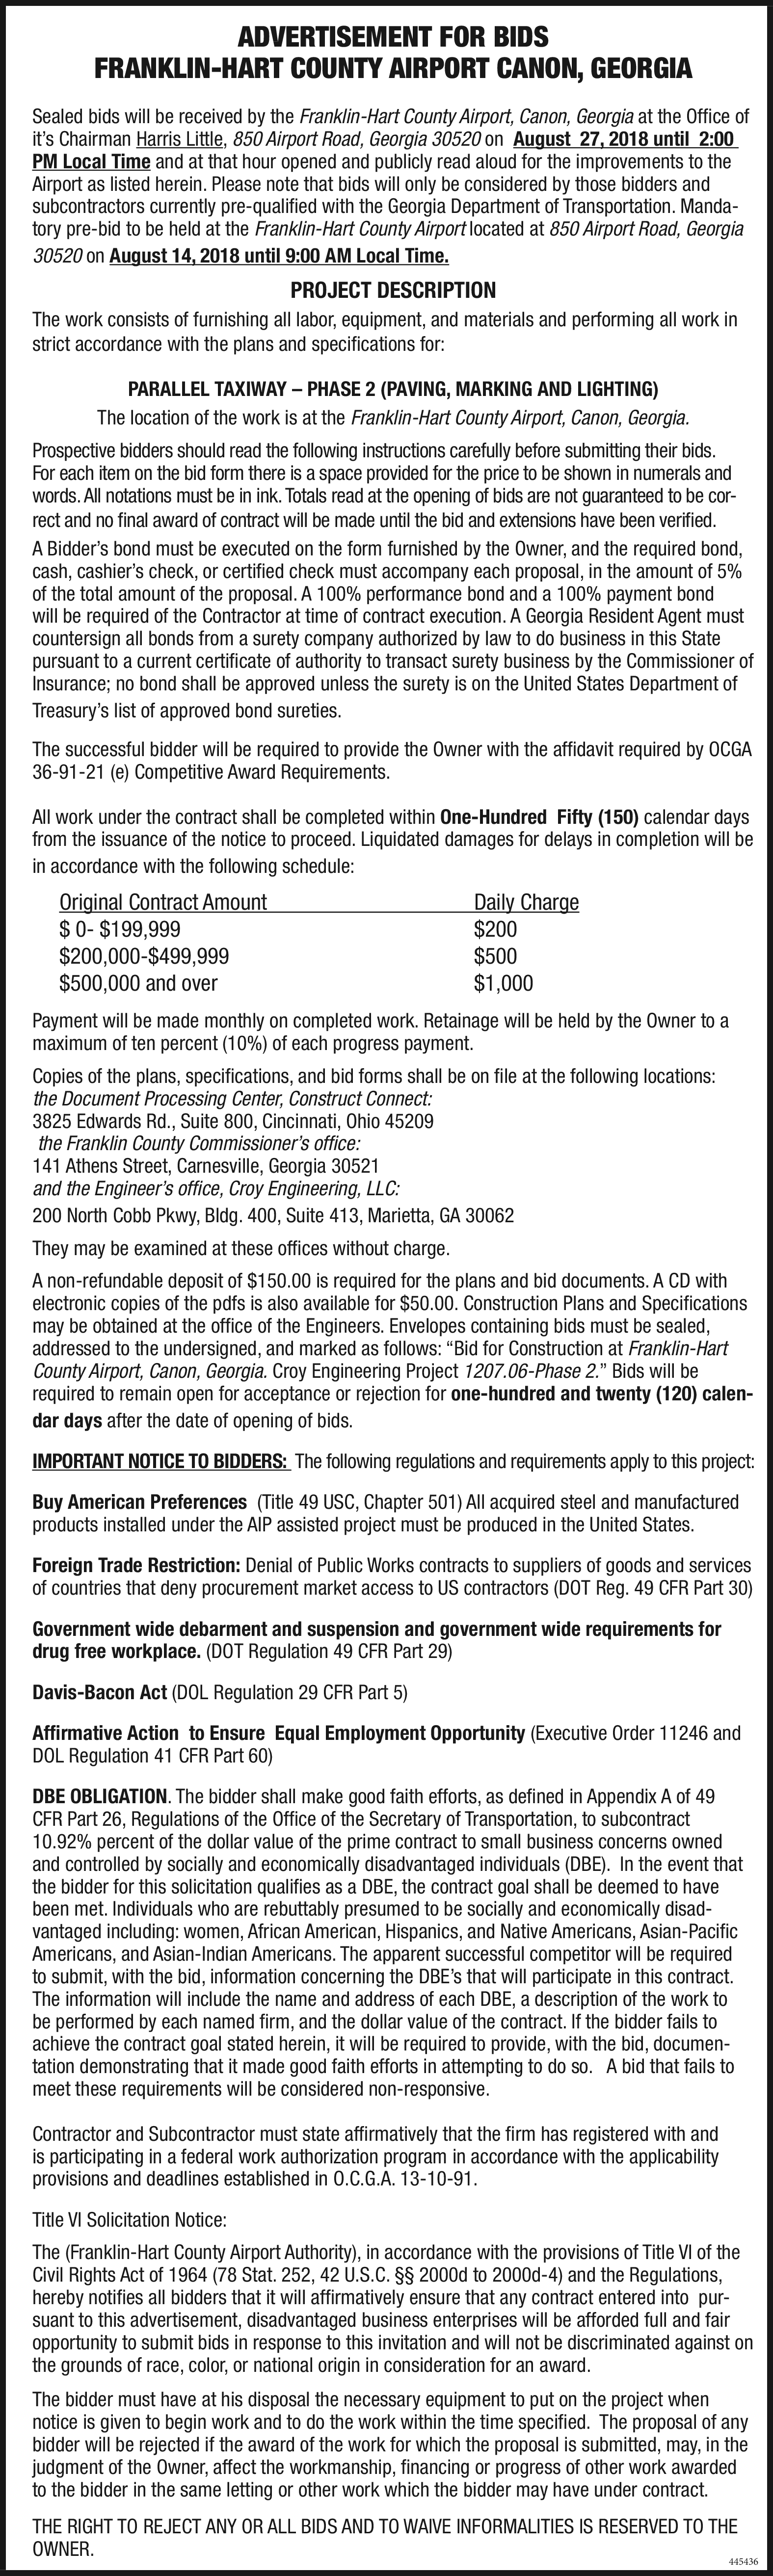 Now Advertisement For Bids in Royston, GA, Airport - Hart